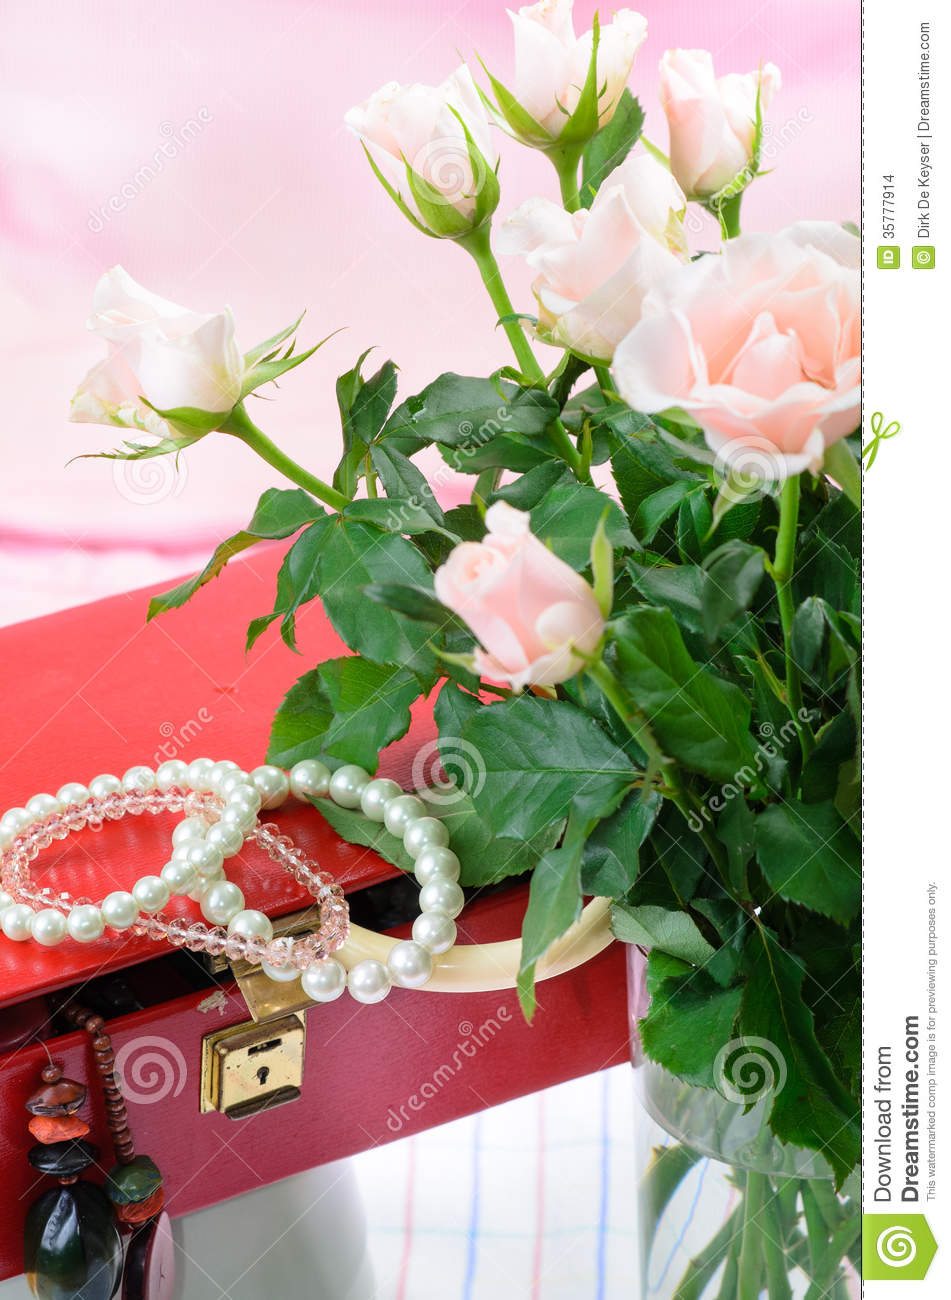 Red jewel box and pink roses